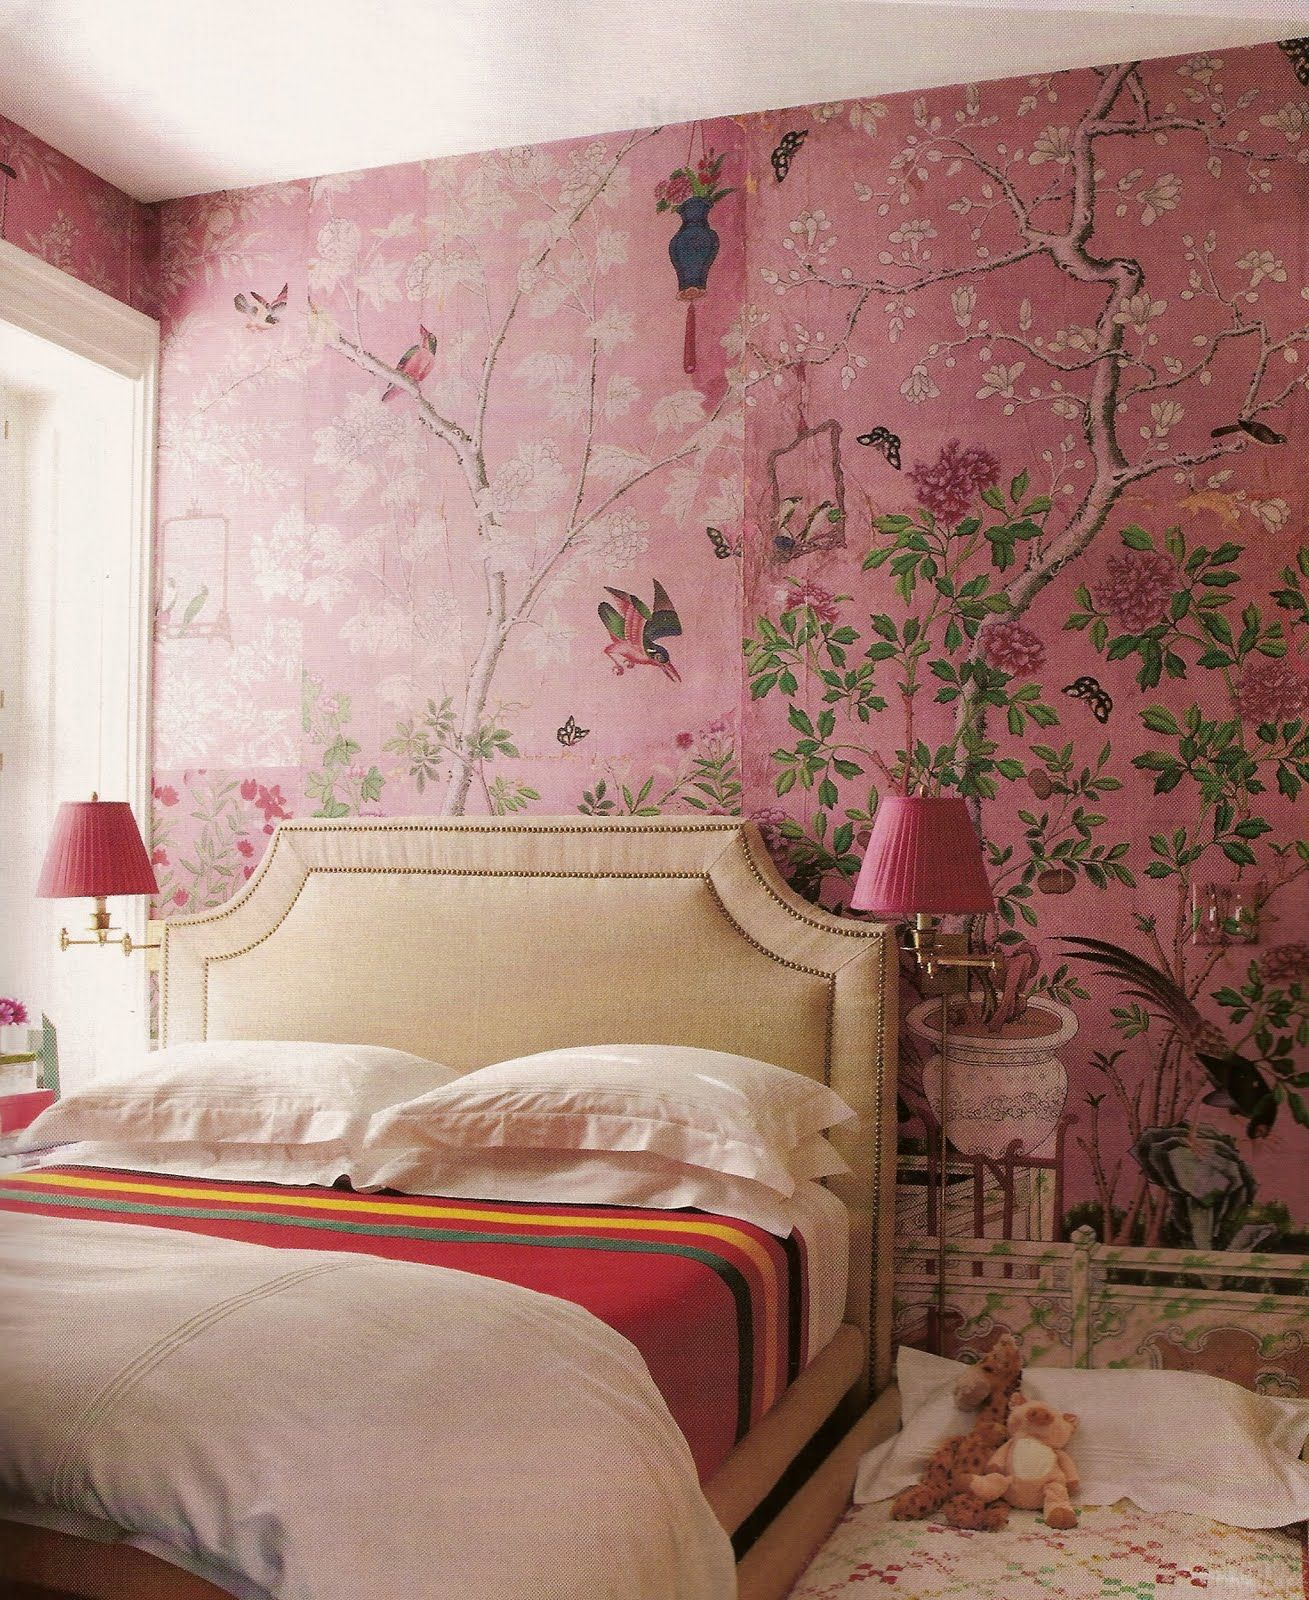 Romantisches schlafzimmer interieur pink chinoserie i donut really like pink enough to do walls in it